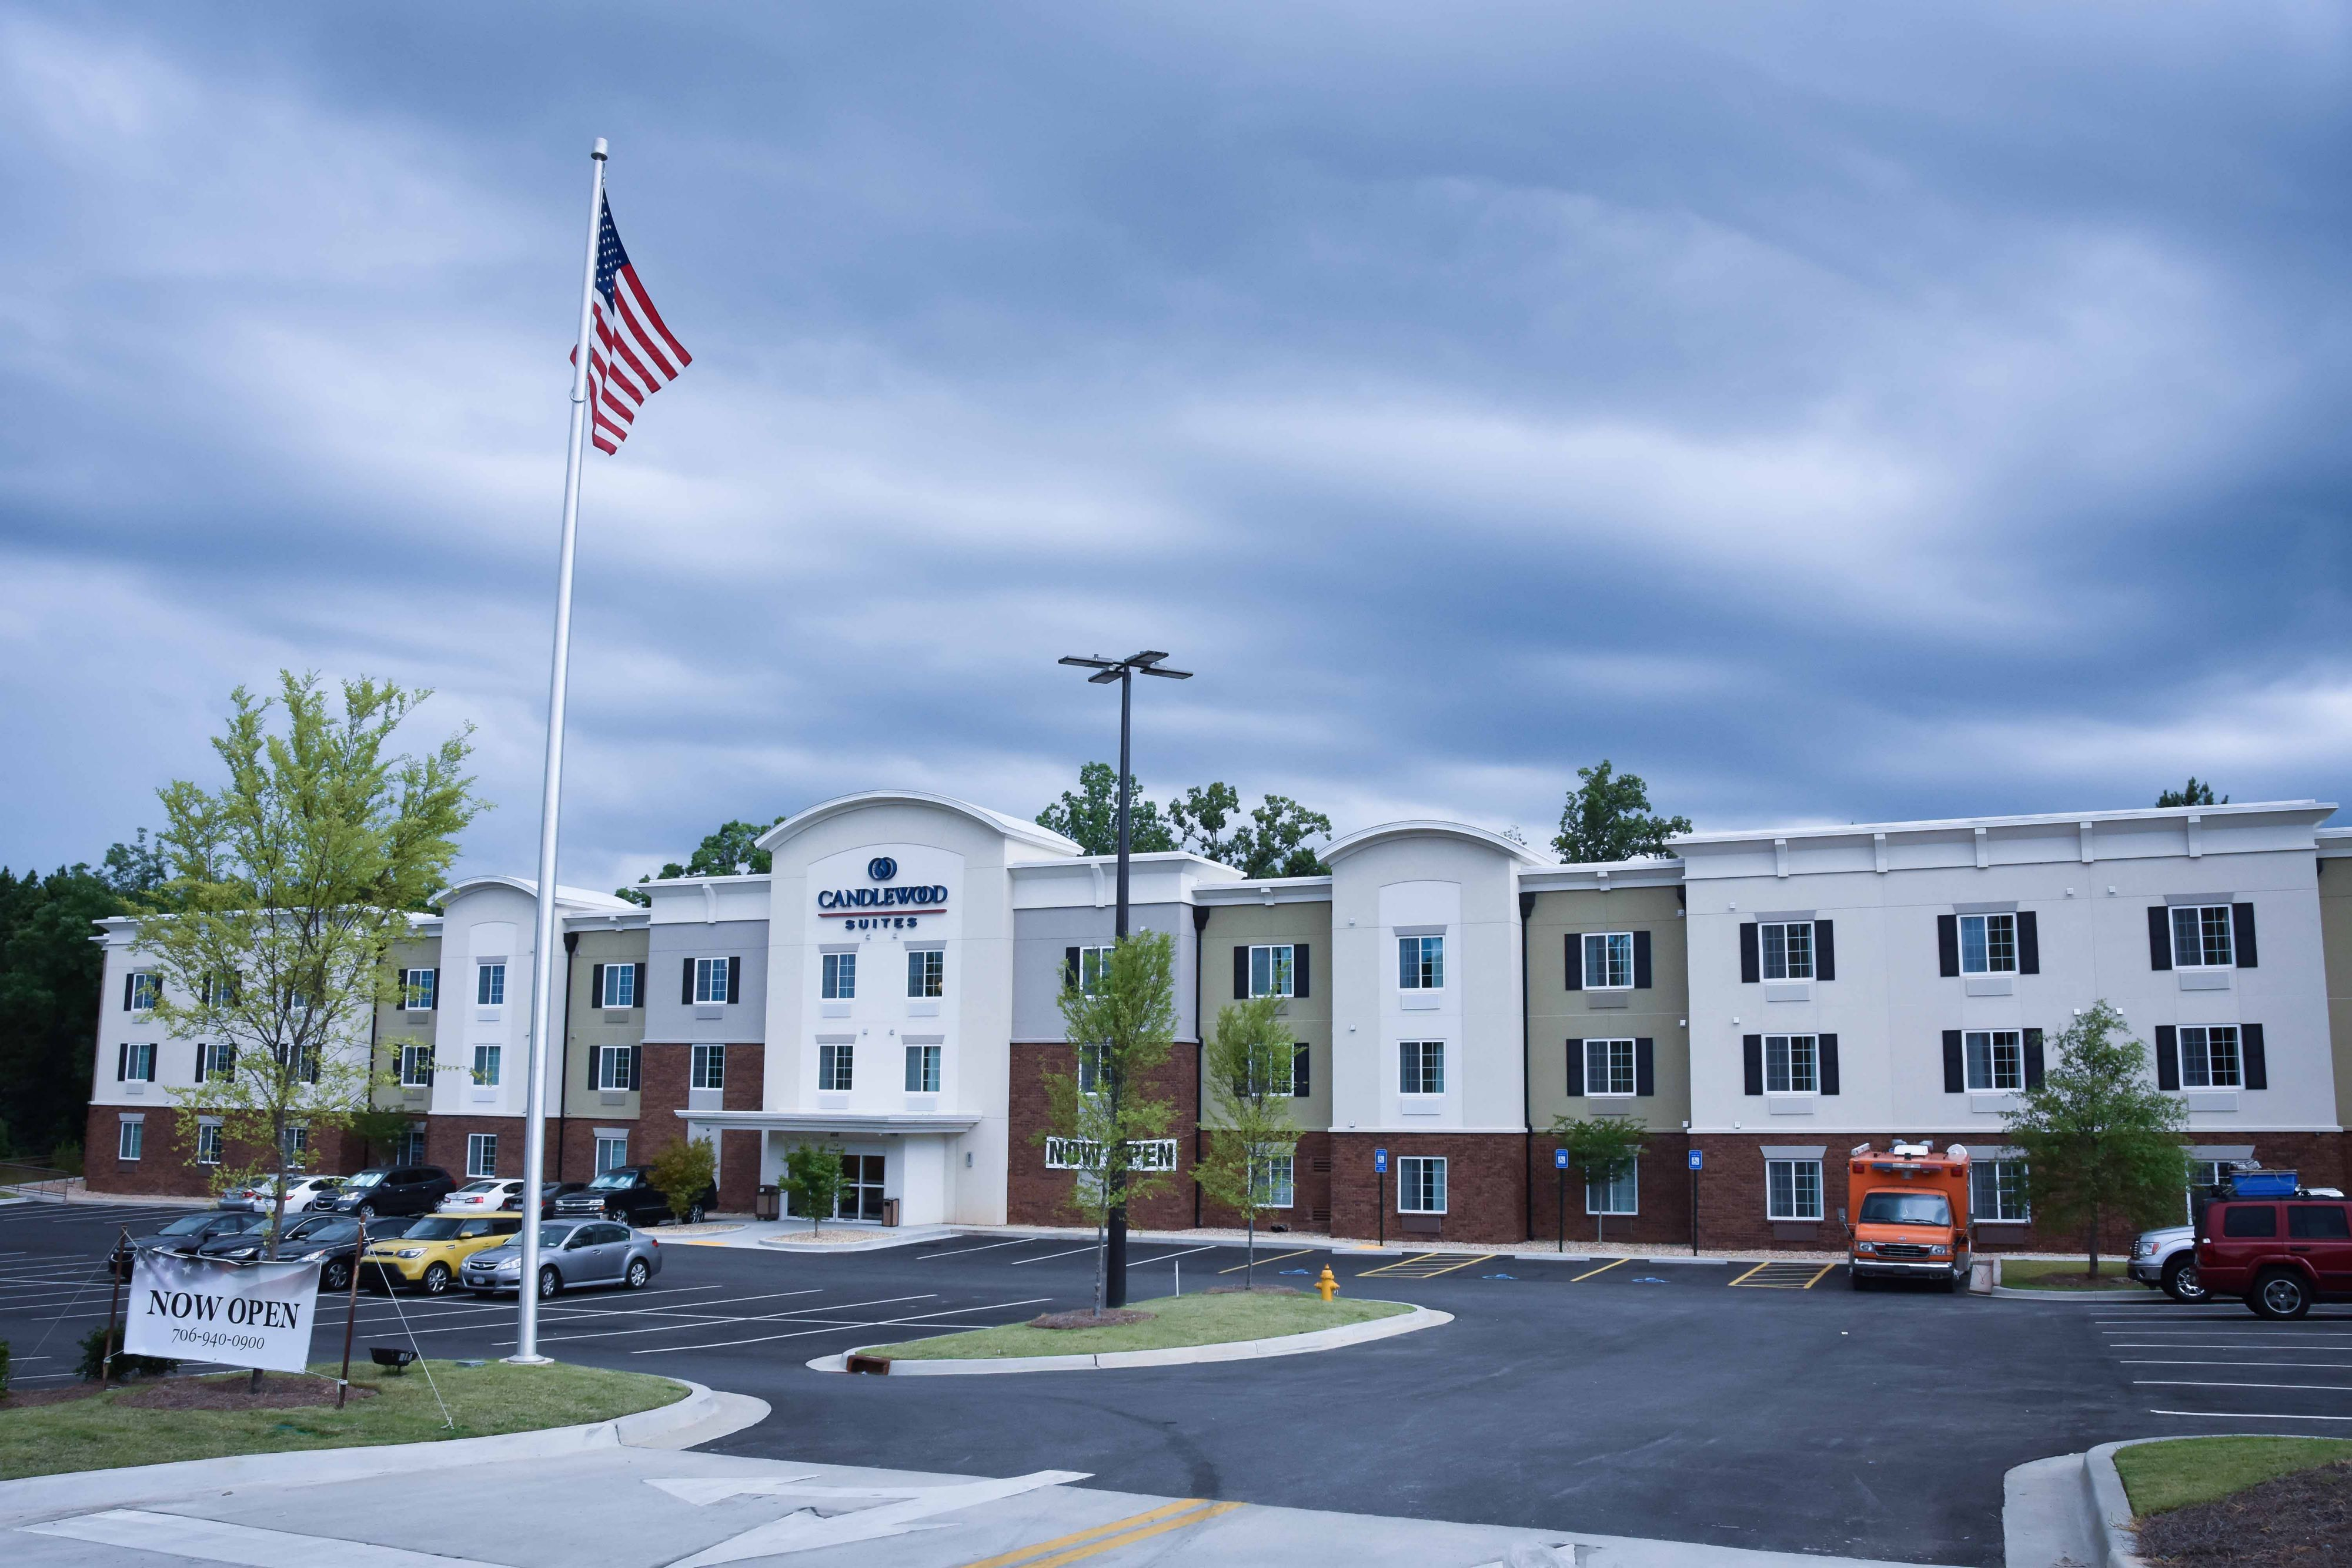 Candlewood Suites Columbia Hwy 63 & I-70 image 3